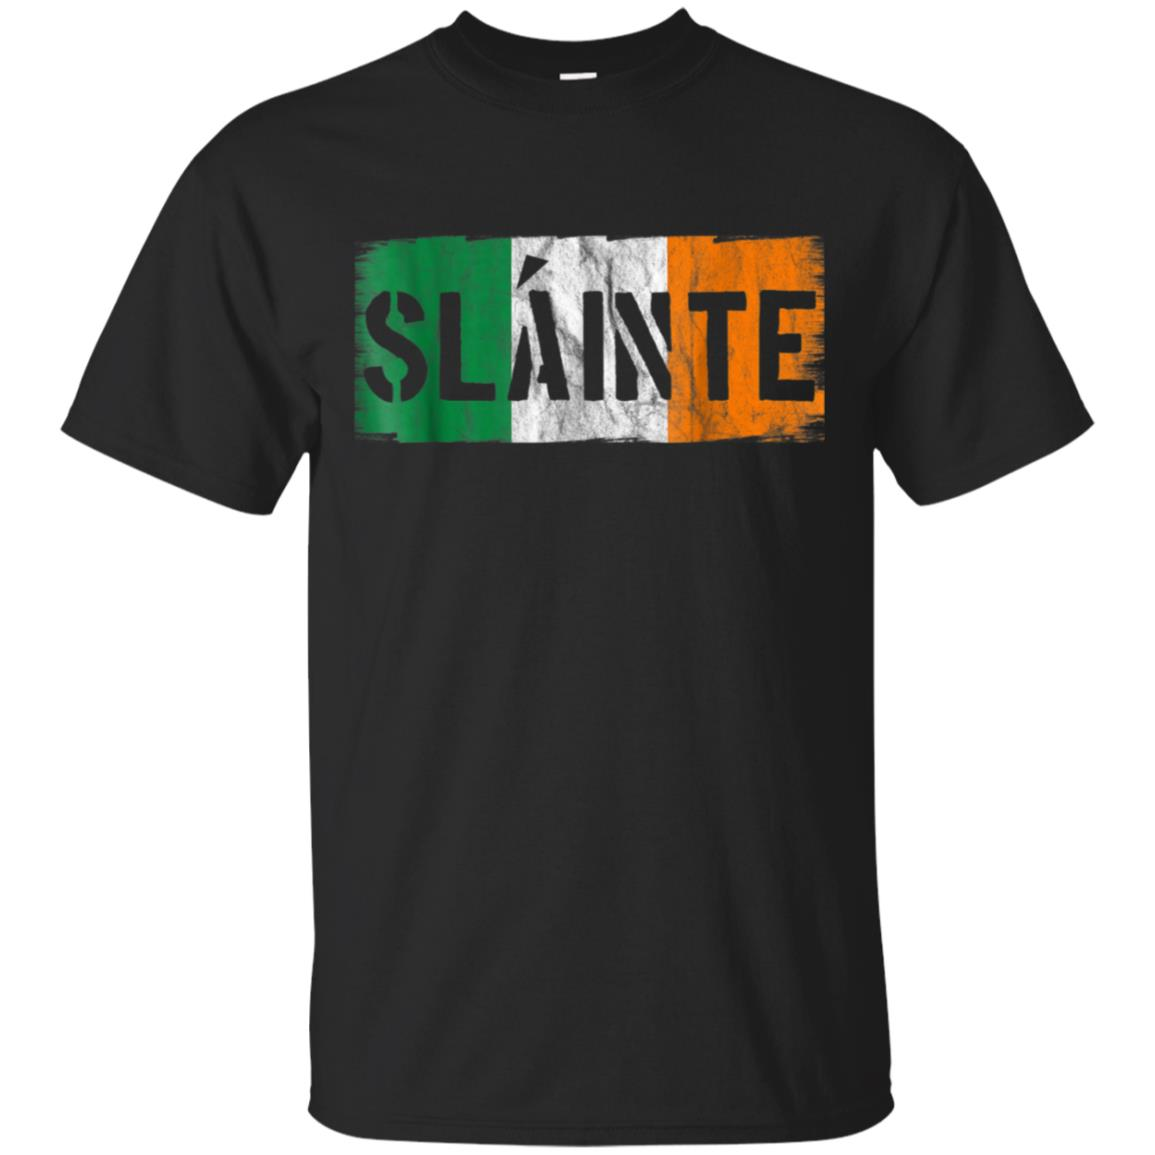 Slainte Irish Gaelic Cheers Vintage St Patricks Day Shirt 99promocode